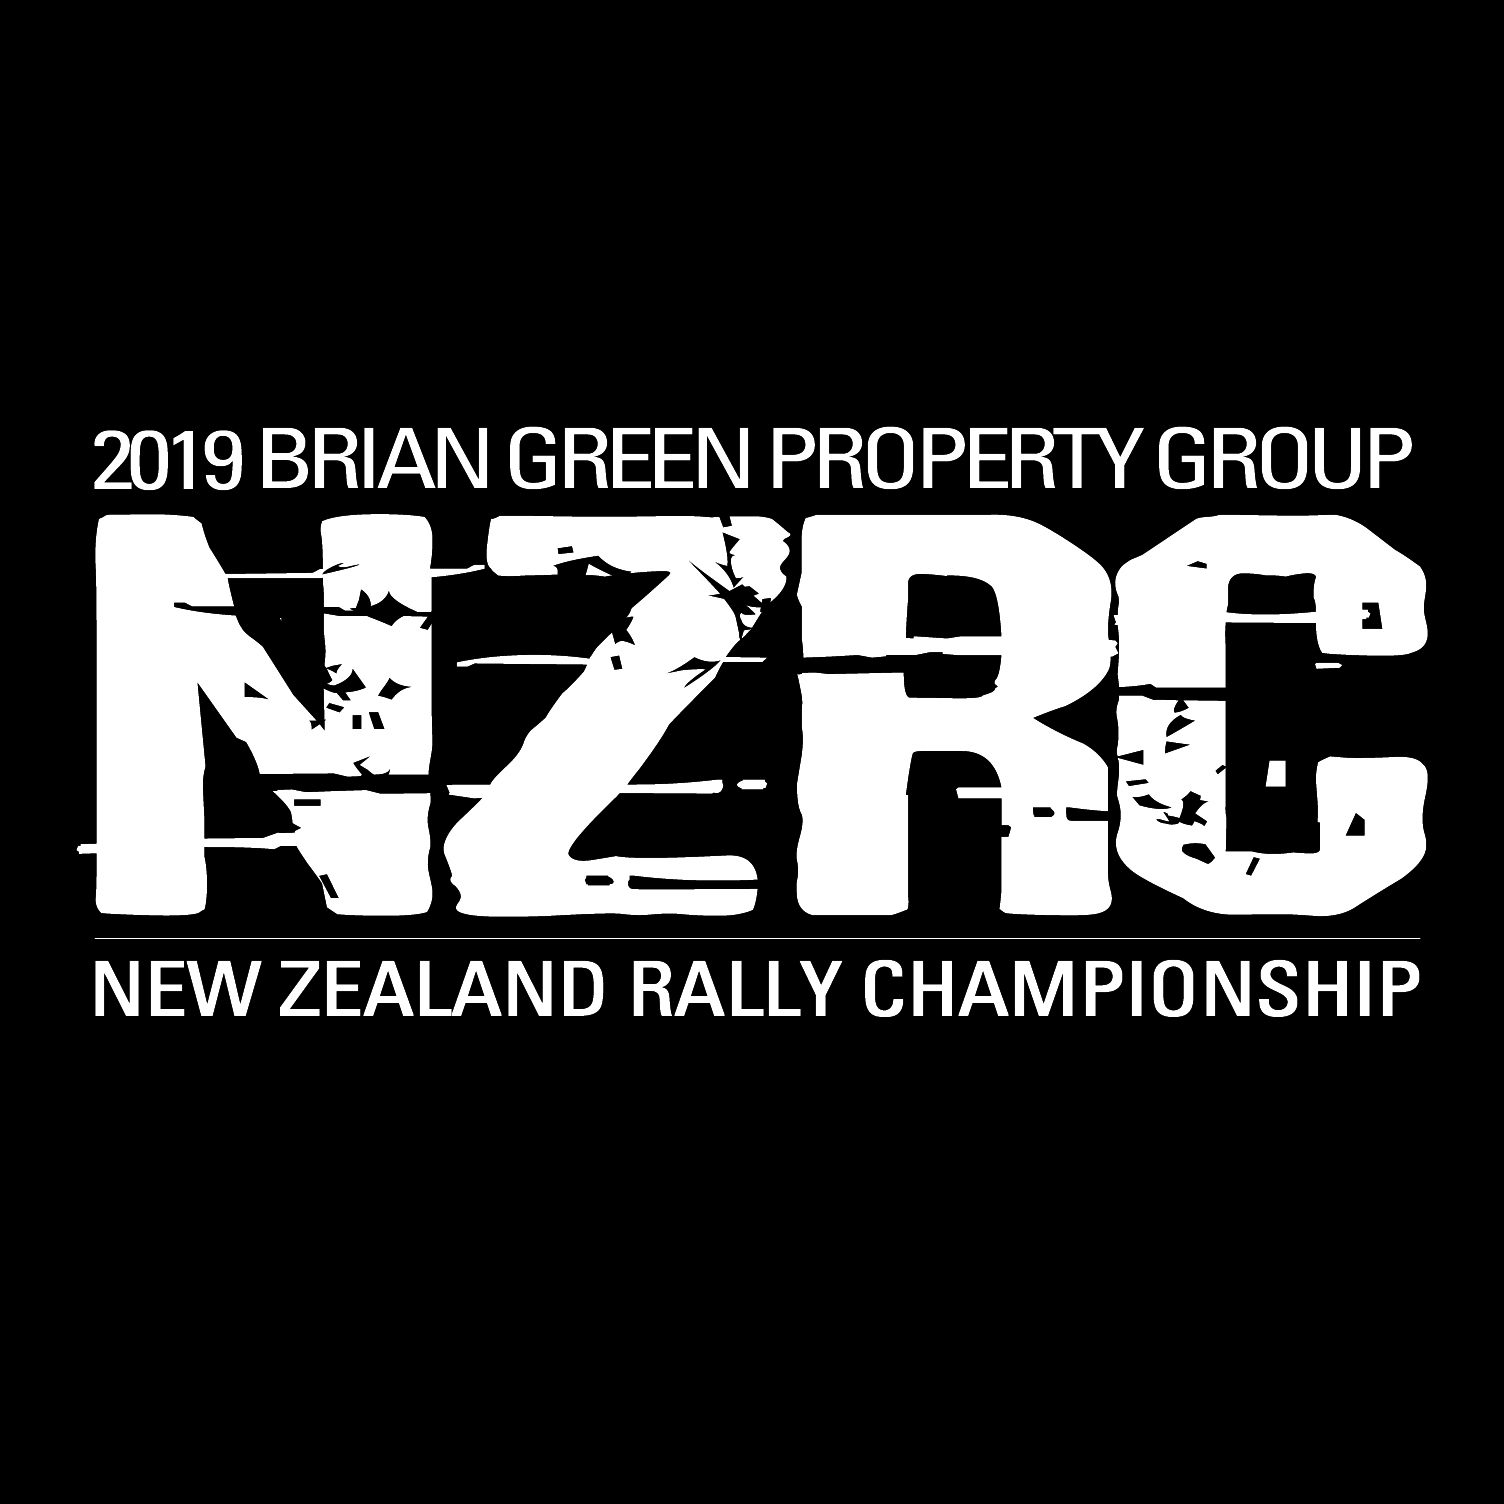 Hawkeswood back on the podium at Gisborne | :: Brian Green Property Group New Zealand Rally Championship ::